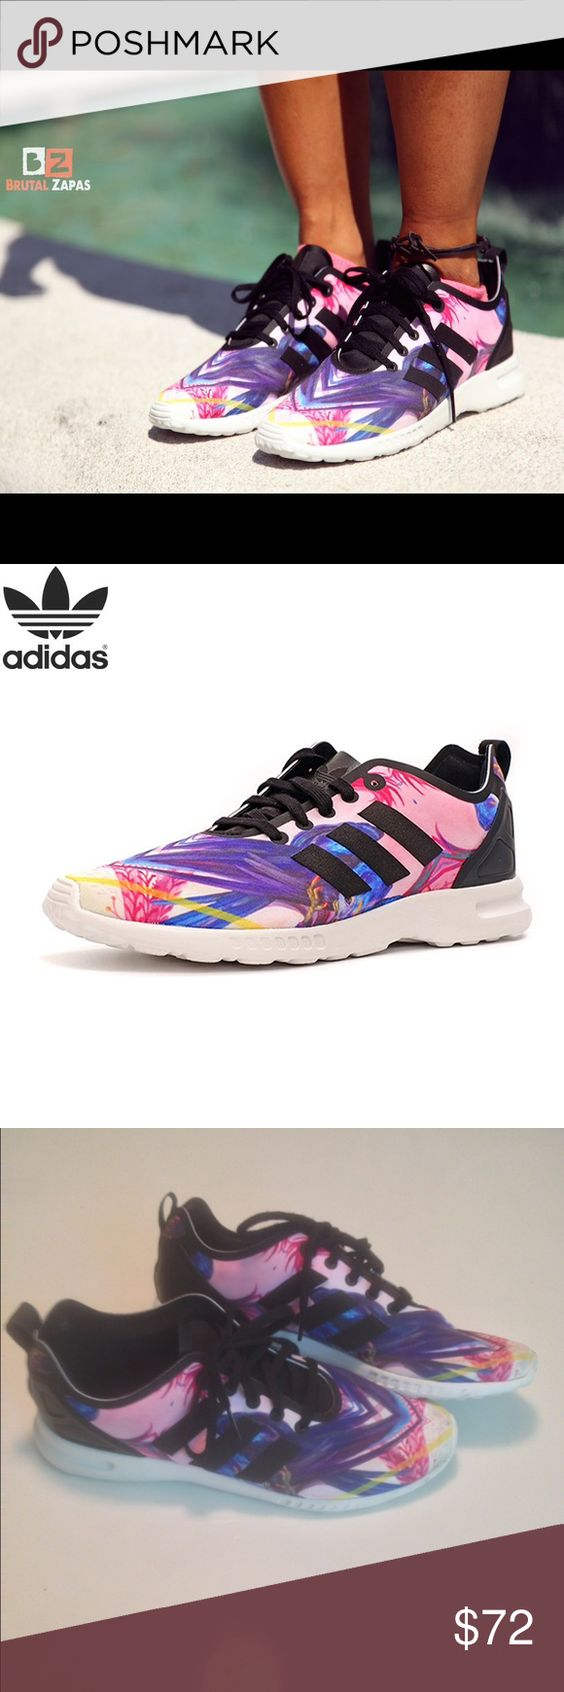 Adidas Zx Flux How Much